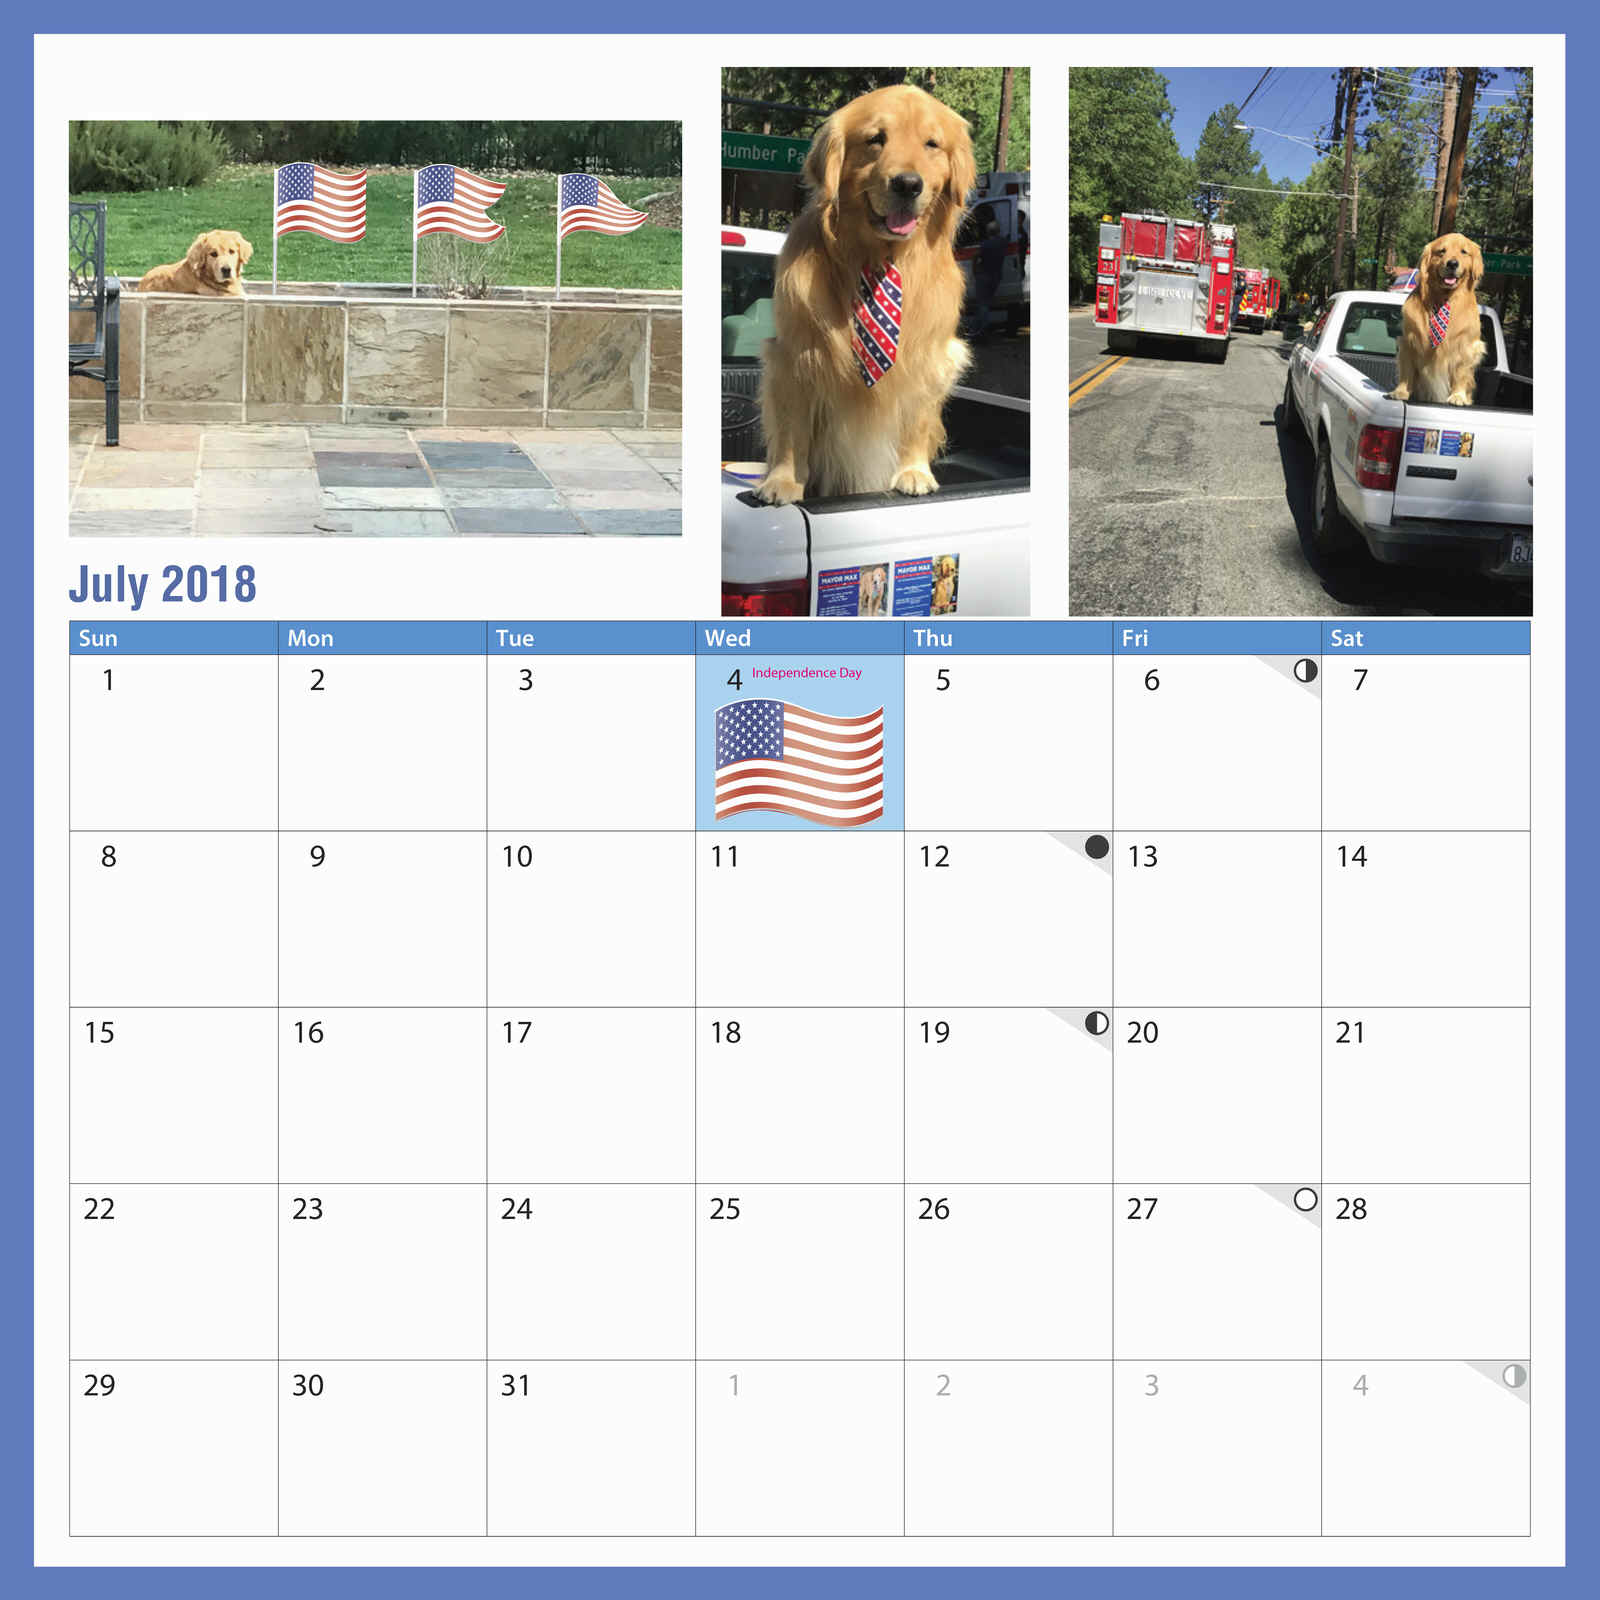 2018 Calendar from the Office of the Mayor of Idyllwild